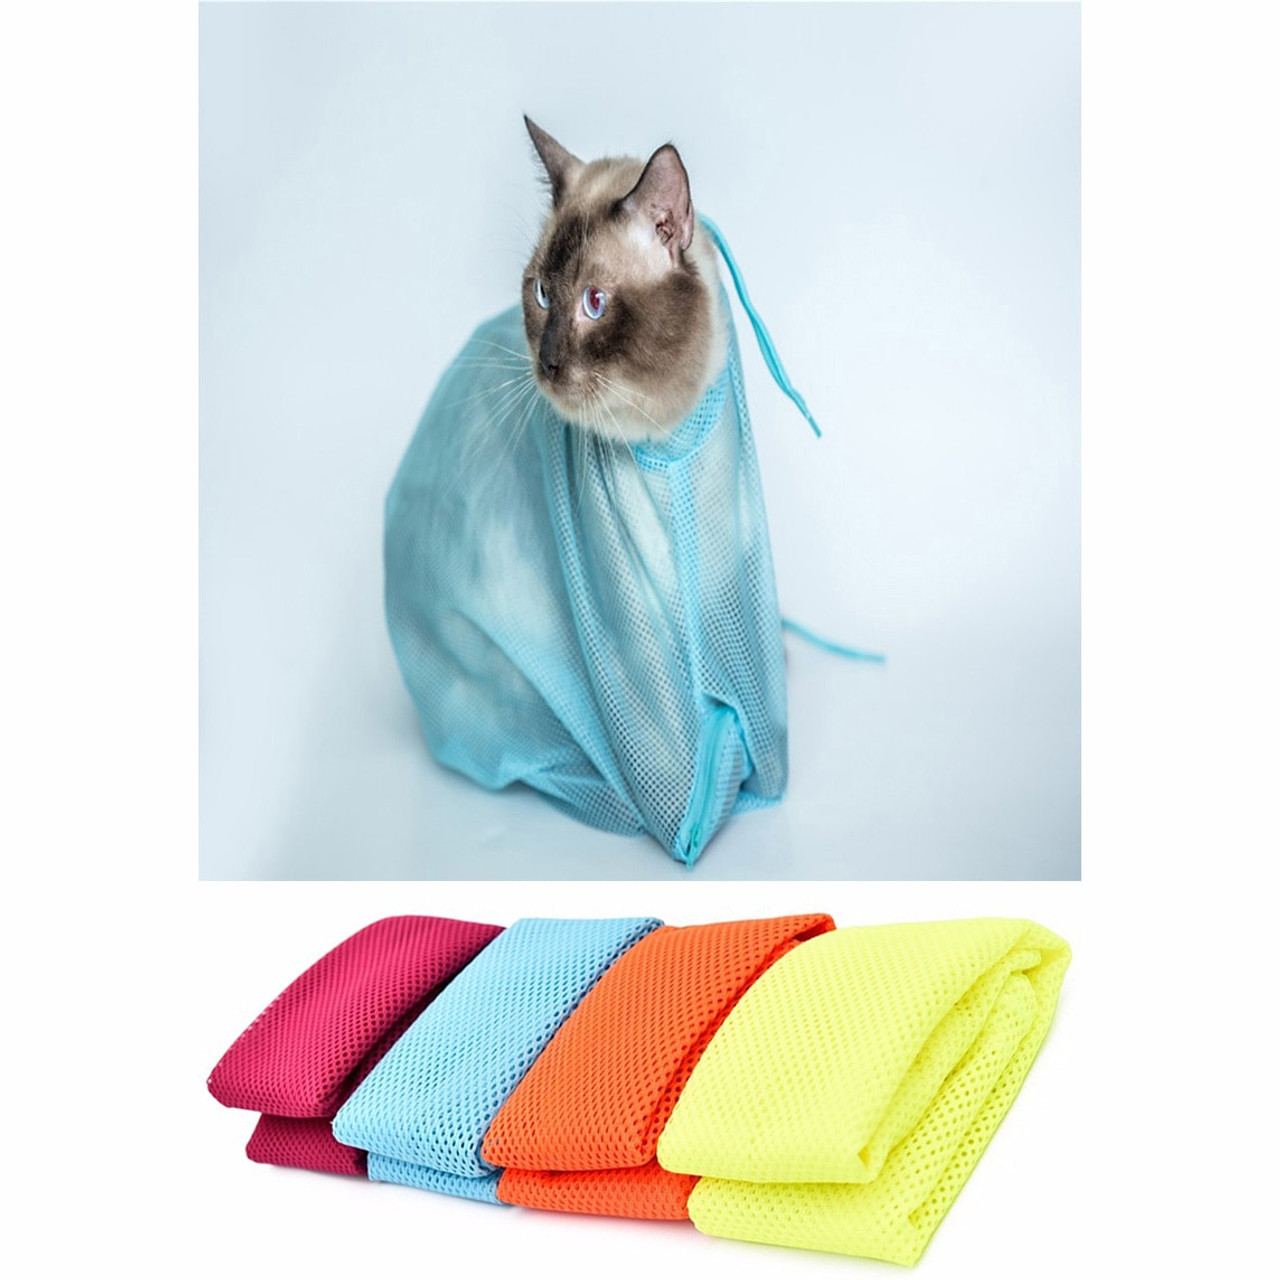 01751e51829 Cat Grooming Bags to protect from accidental scratches | Purrdy Paws